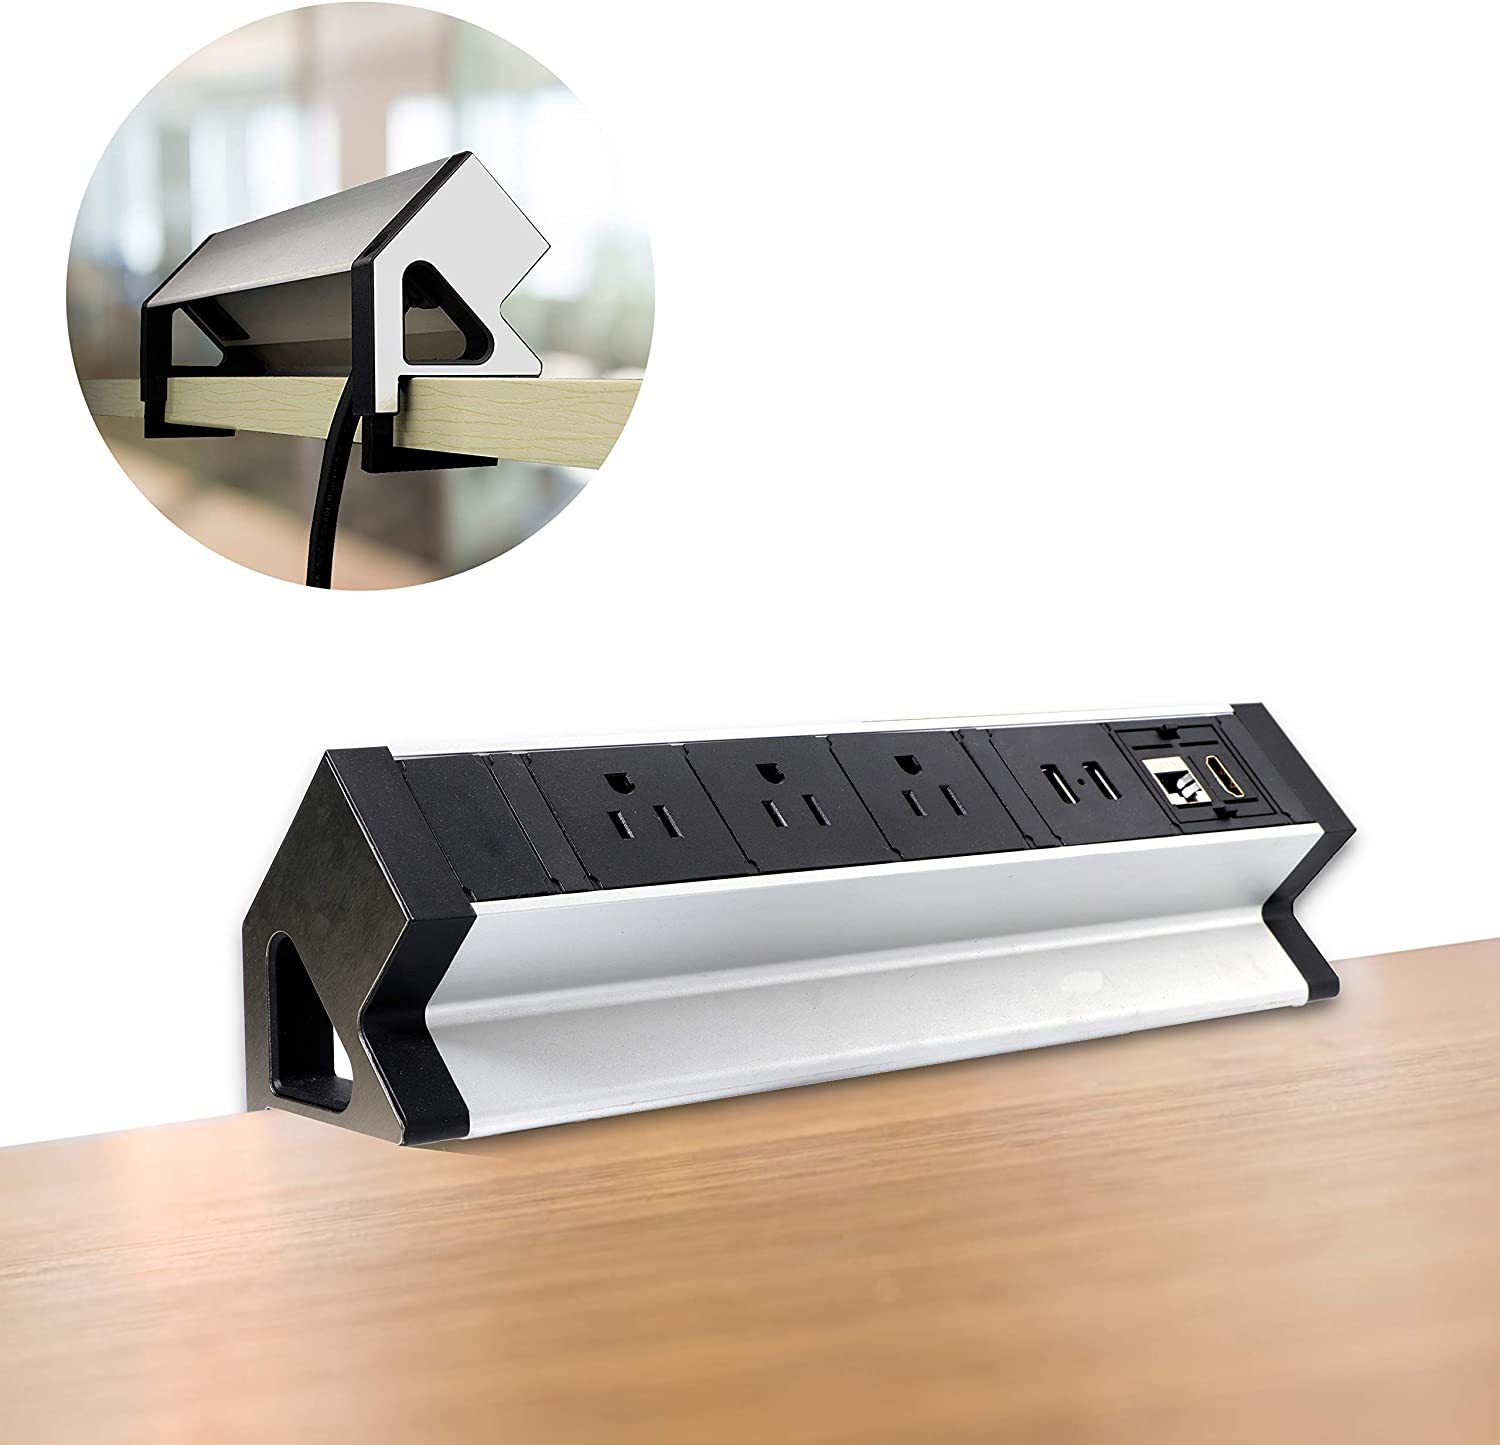 Desktop Clamp Power Strip, Black Desk Power Outlets, Removable Desktop Mount Multi-Outlets with USB, Power Socket Connect 3 US Plugs 2 USB Ports and 1 CAT6 Port 1 HDMI Port for Home Office Reading